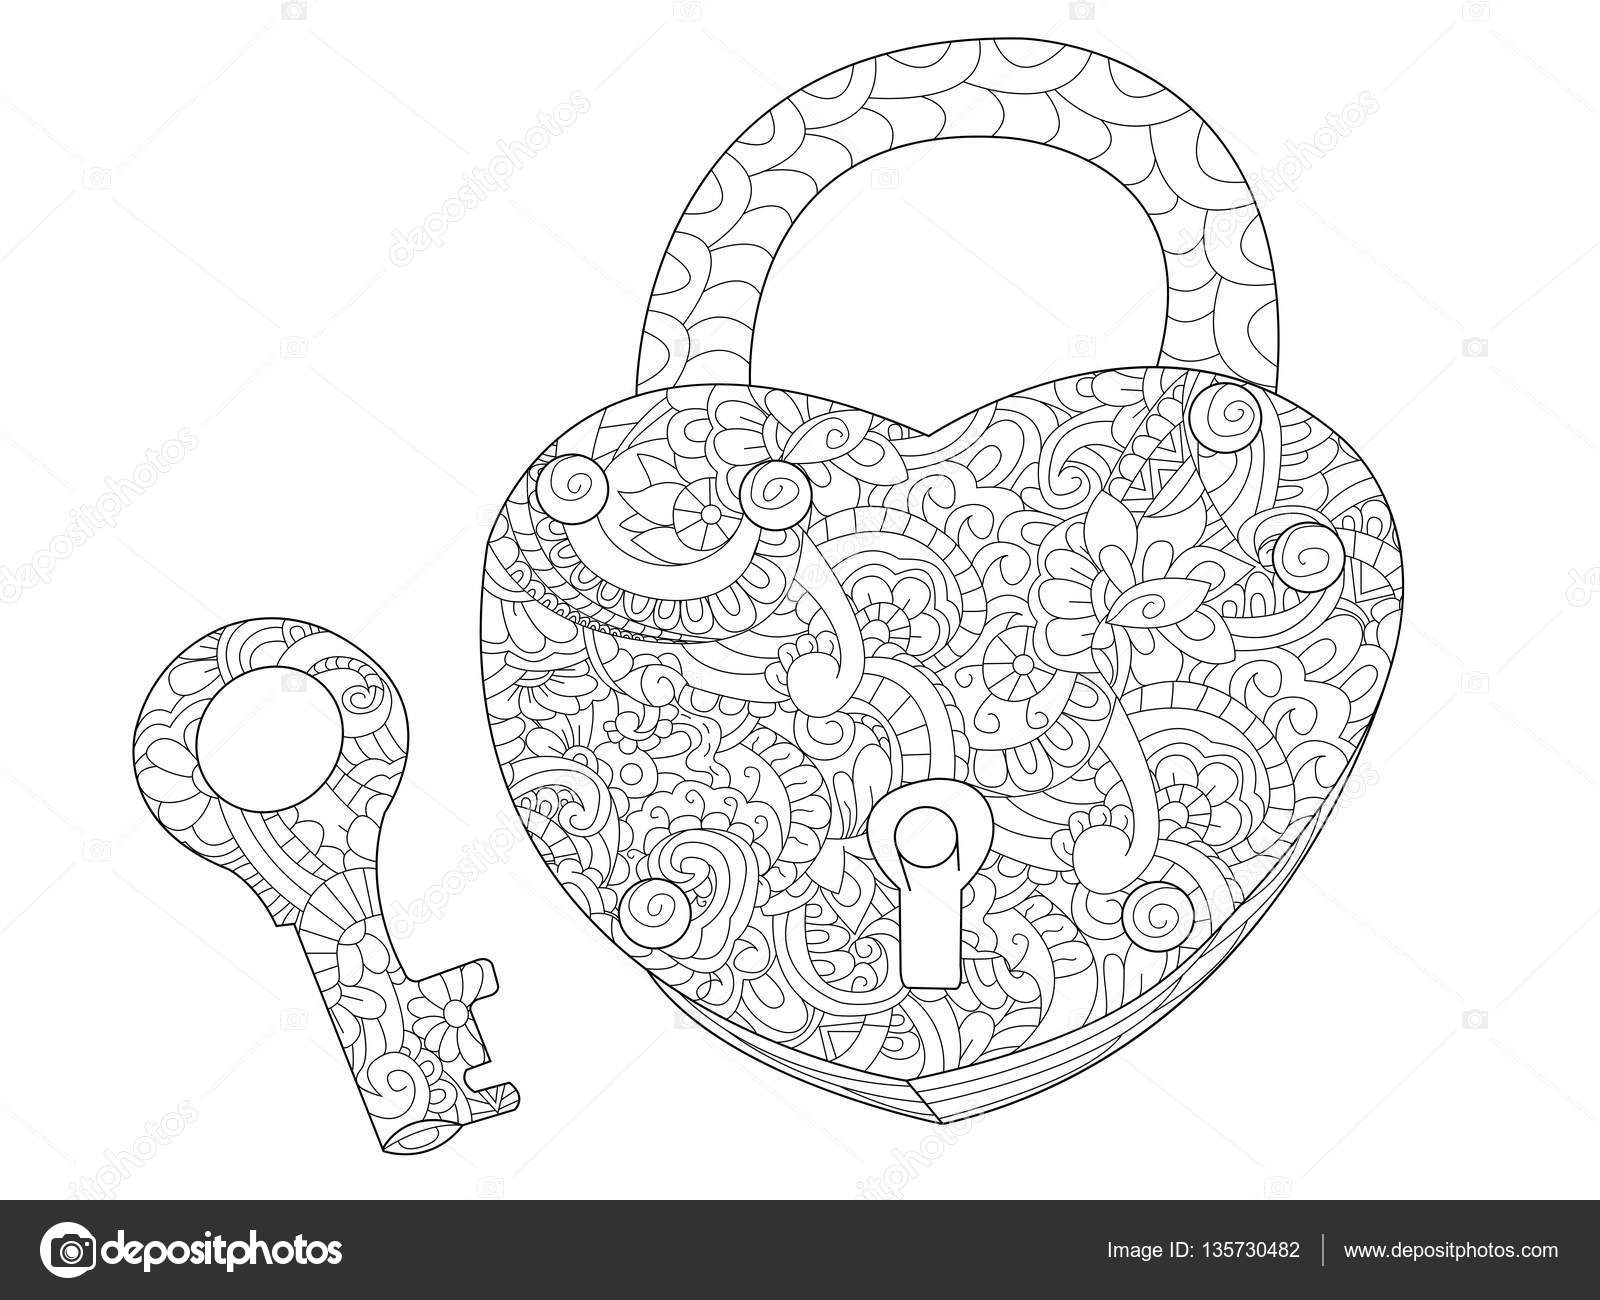 Lock Shock And Barrel Coloring Pages